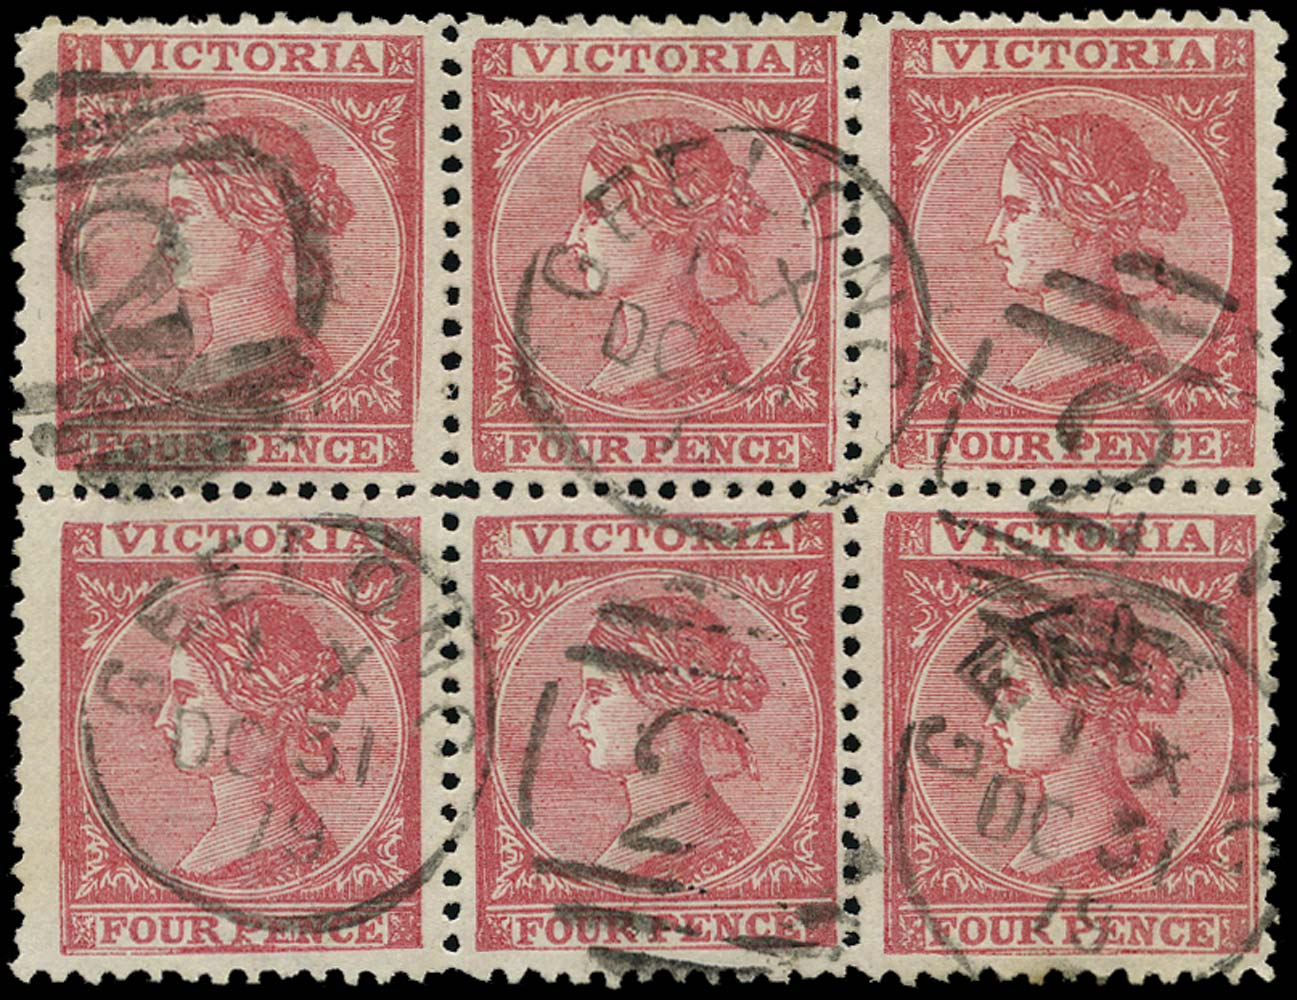 VICTORIA (AUS) 1867  SG144c Used 4d dull rose-red Laureate earliest recorded usage